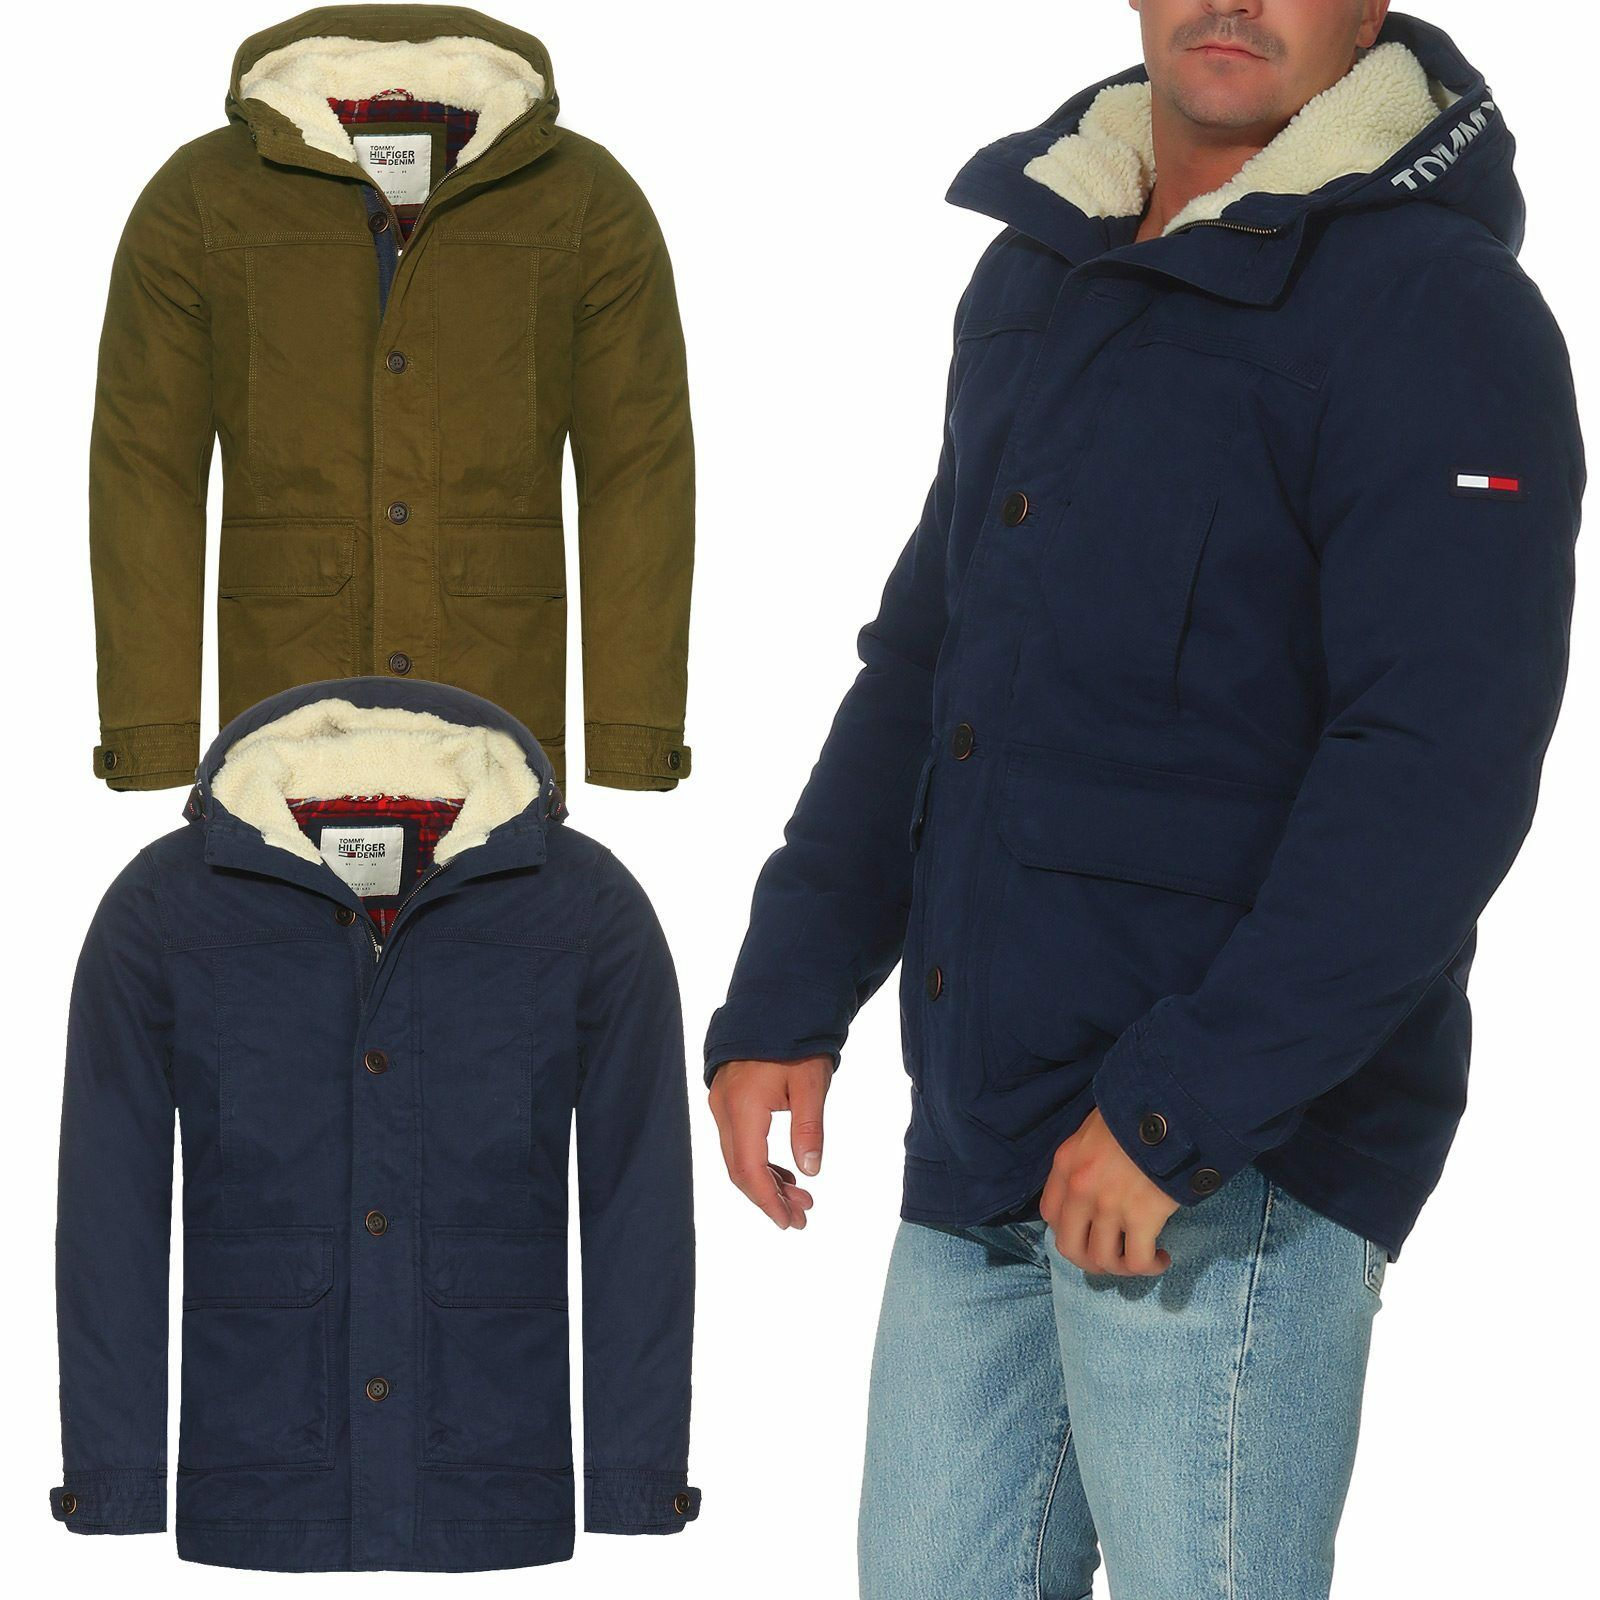 tommy hilfiger denim herren jacke parka winterjacke gr s. Black Bedroom Furniture Sets. Home Design Ideas